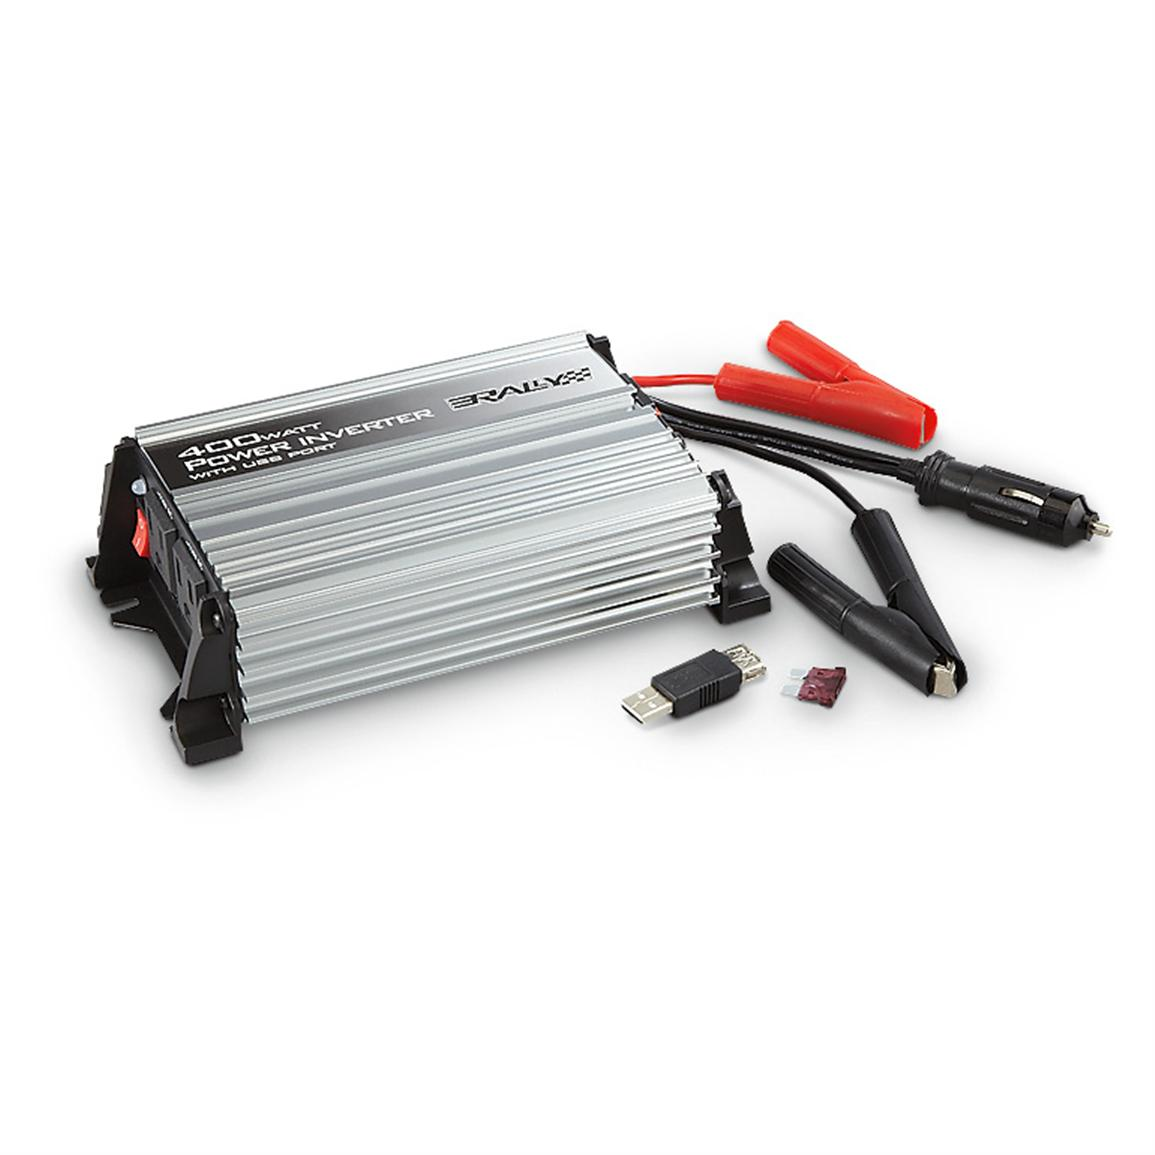 Rally® 400-watt Power Inverter